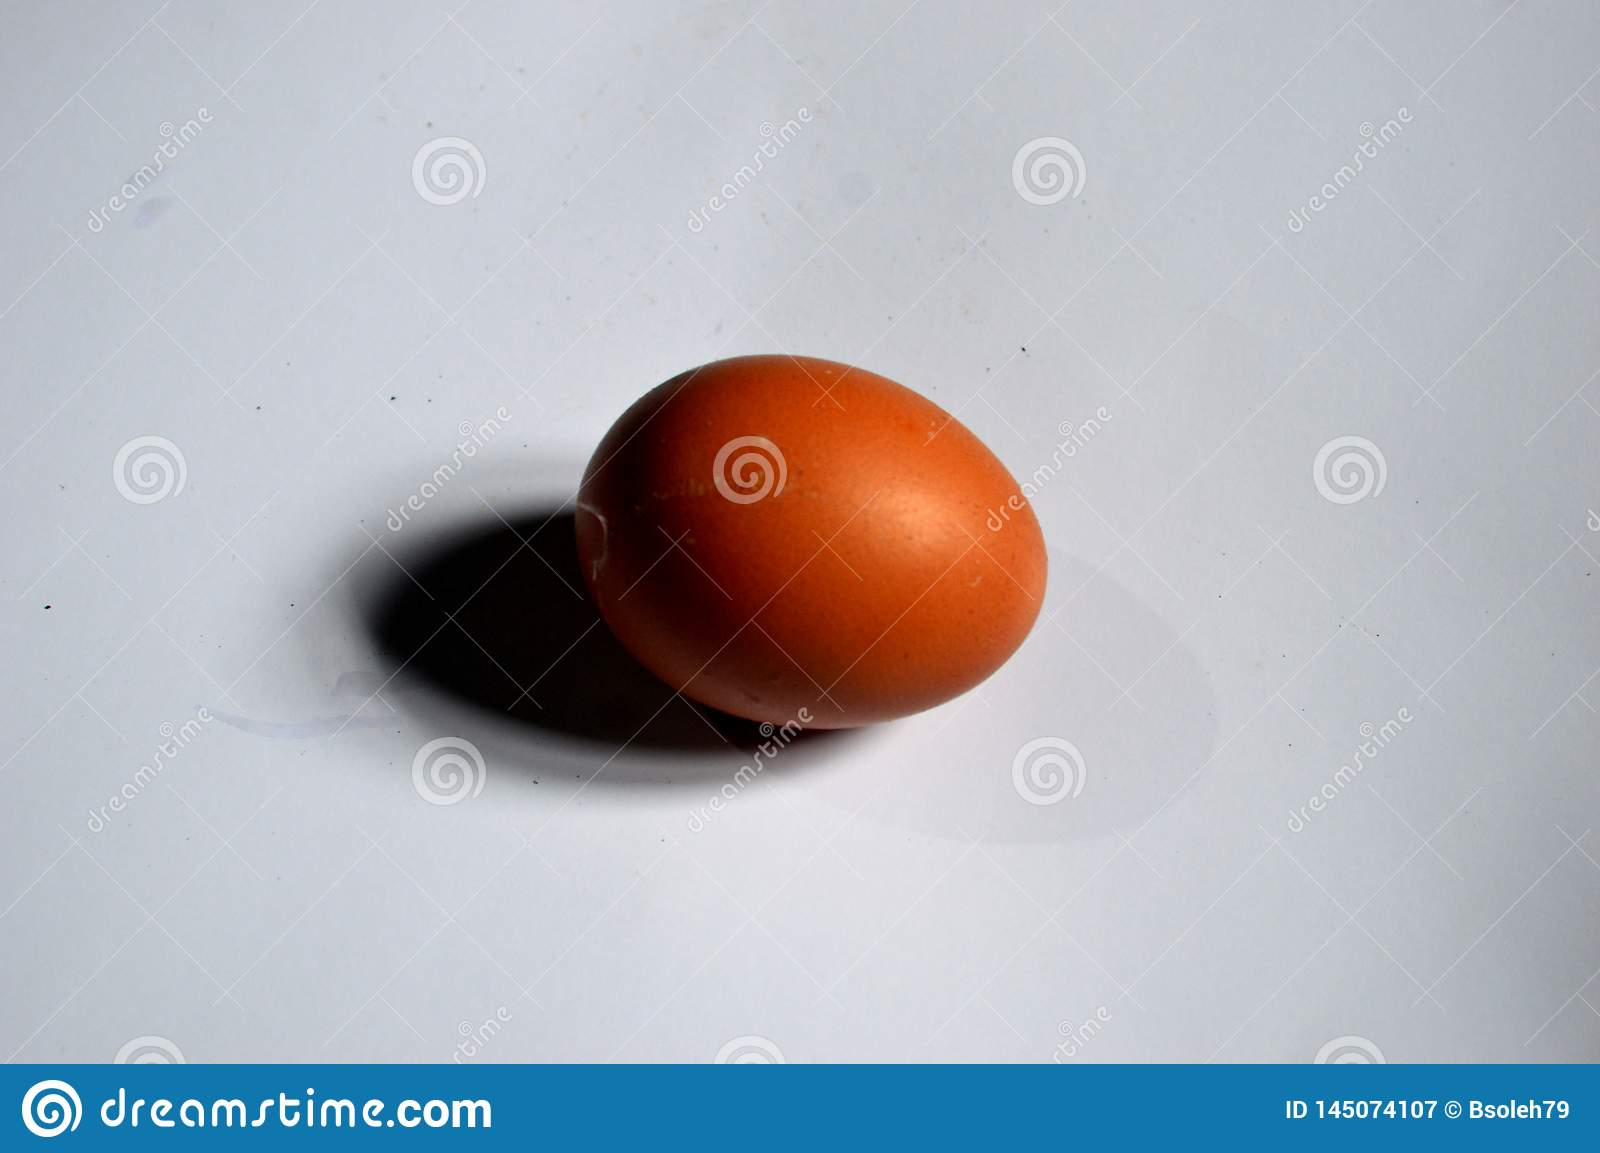 Photo of an egg with a white background